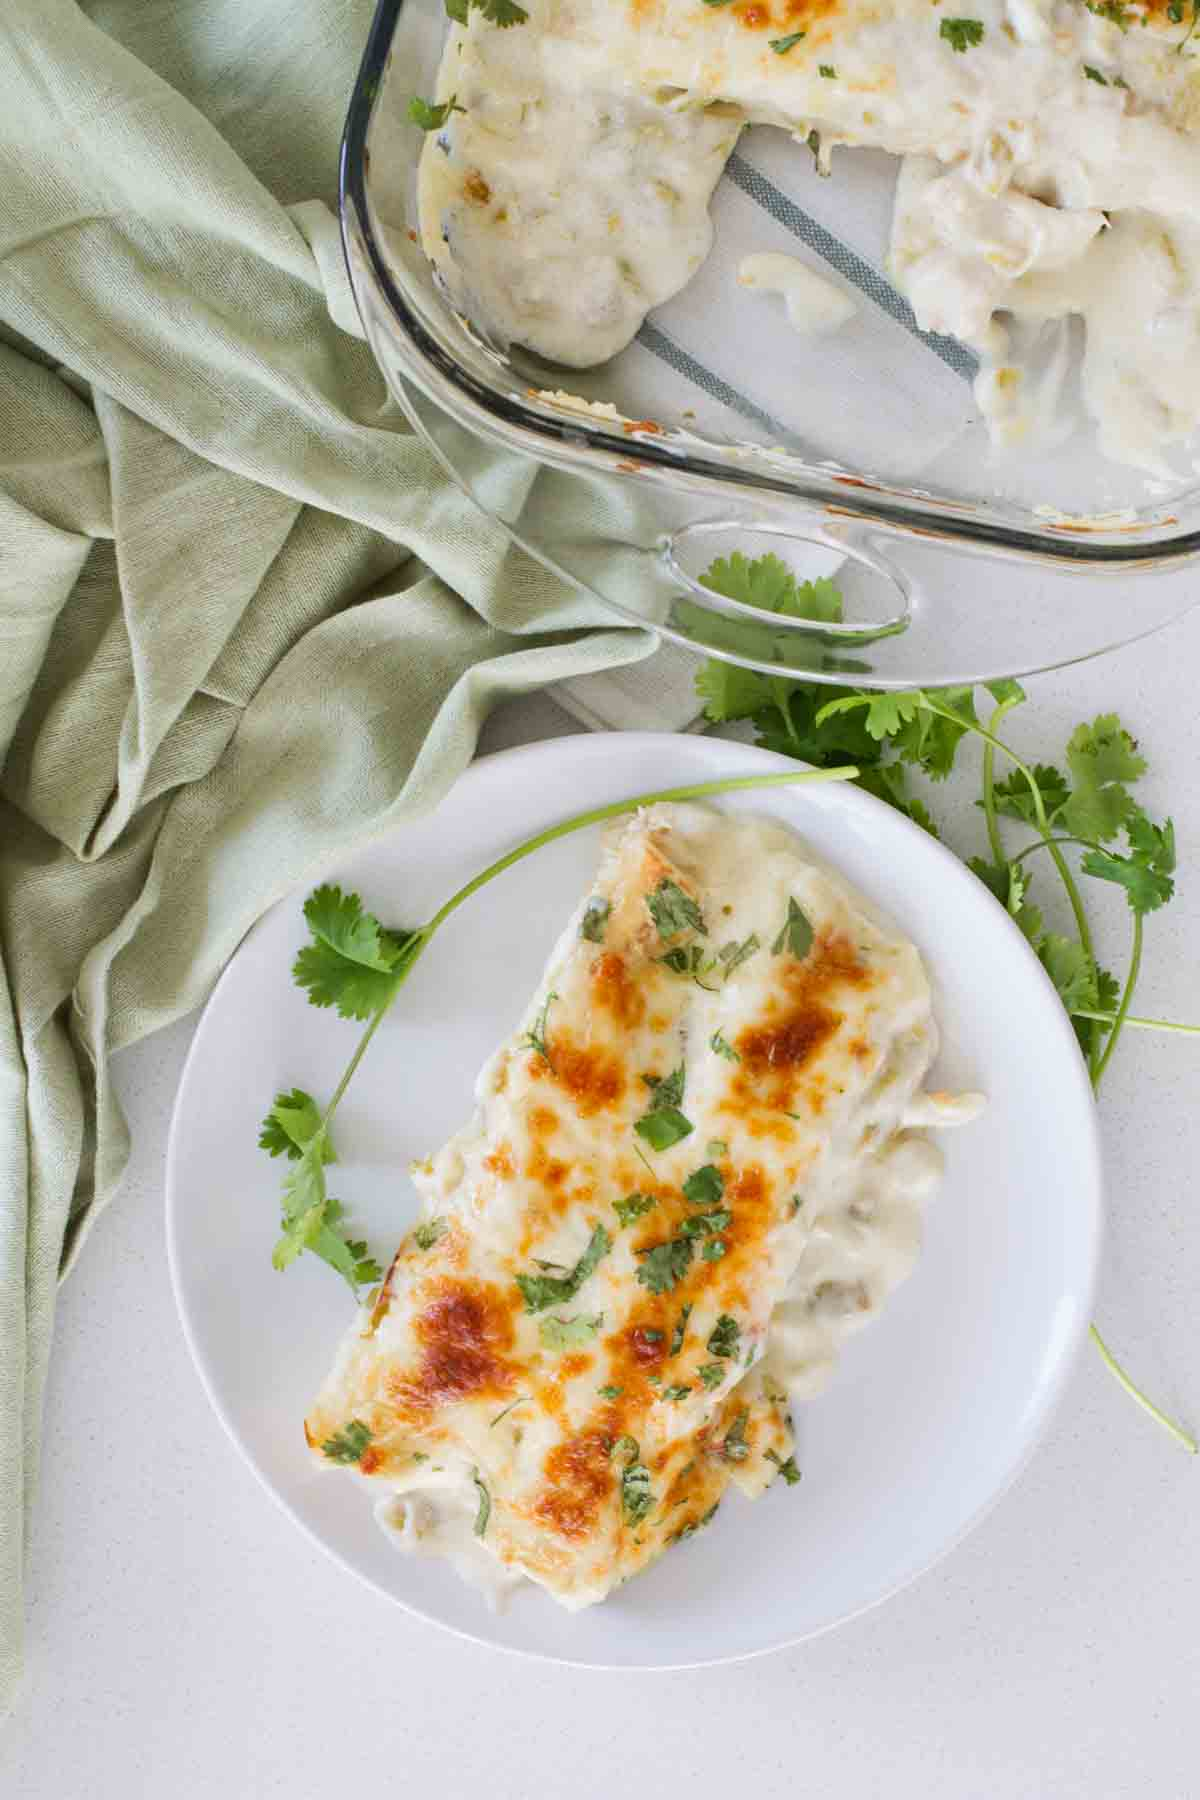 chicken enchiladas on a plate with cilantro